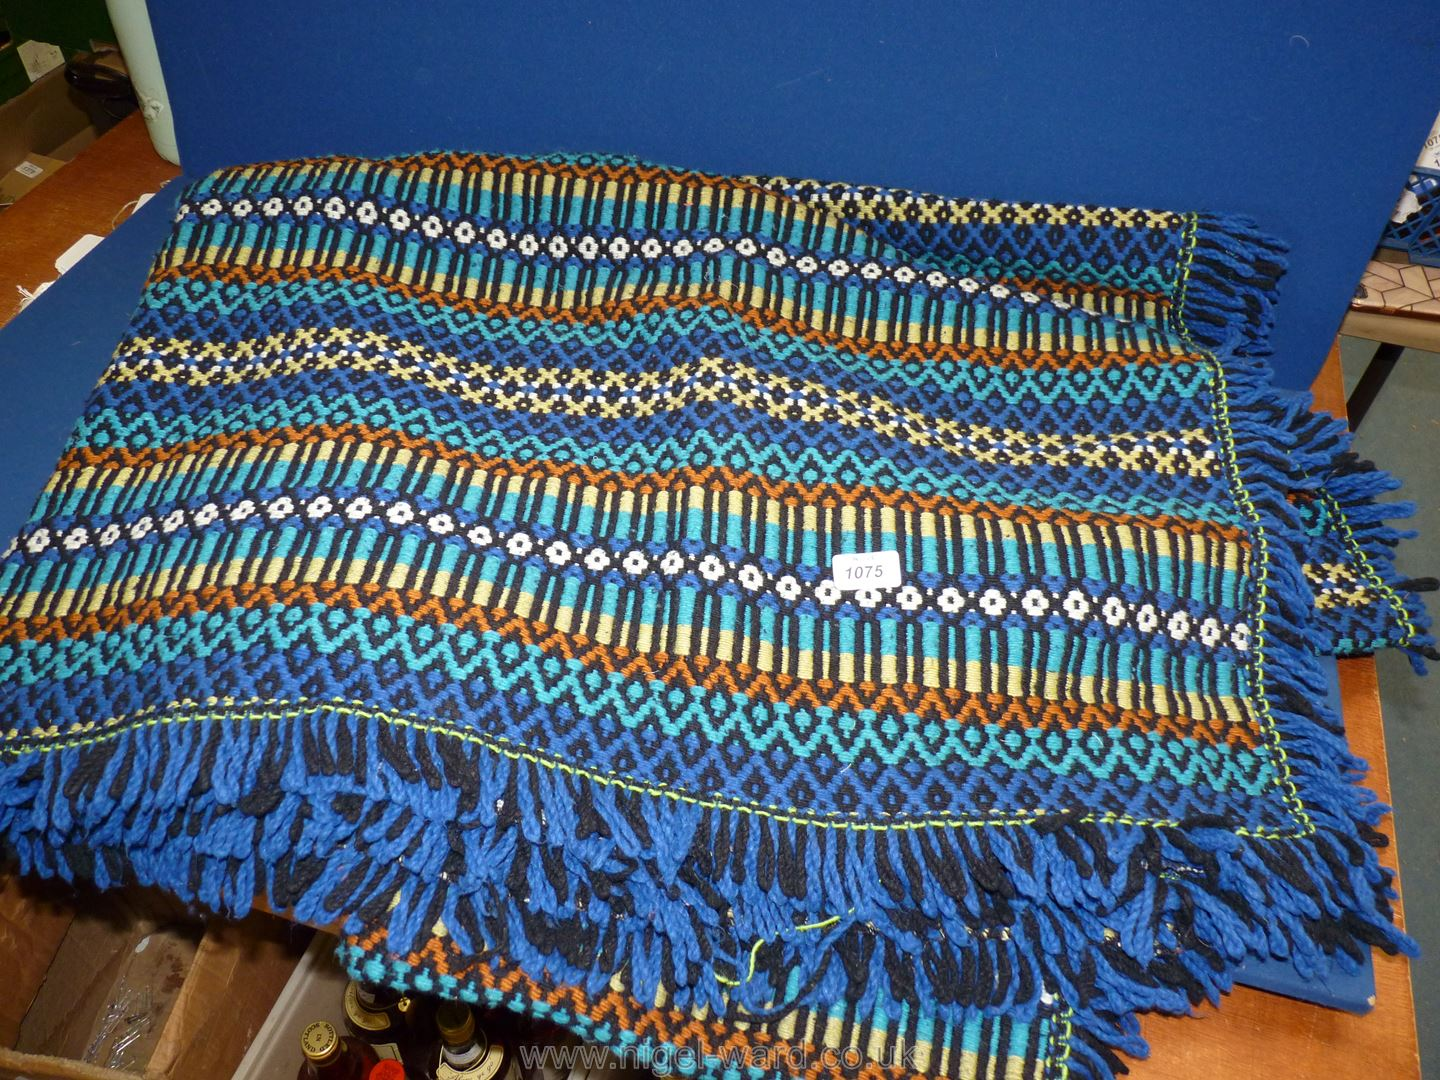 A large blue wool throw with fringing (some has come away).